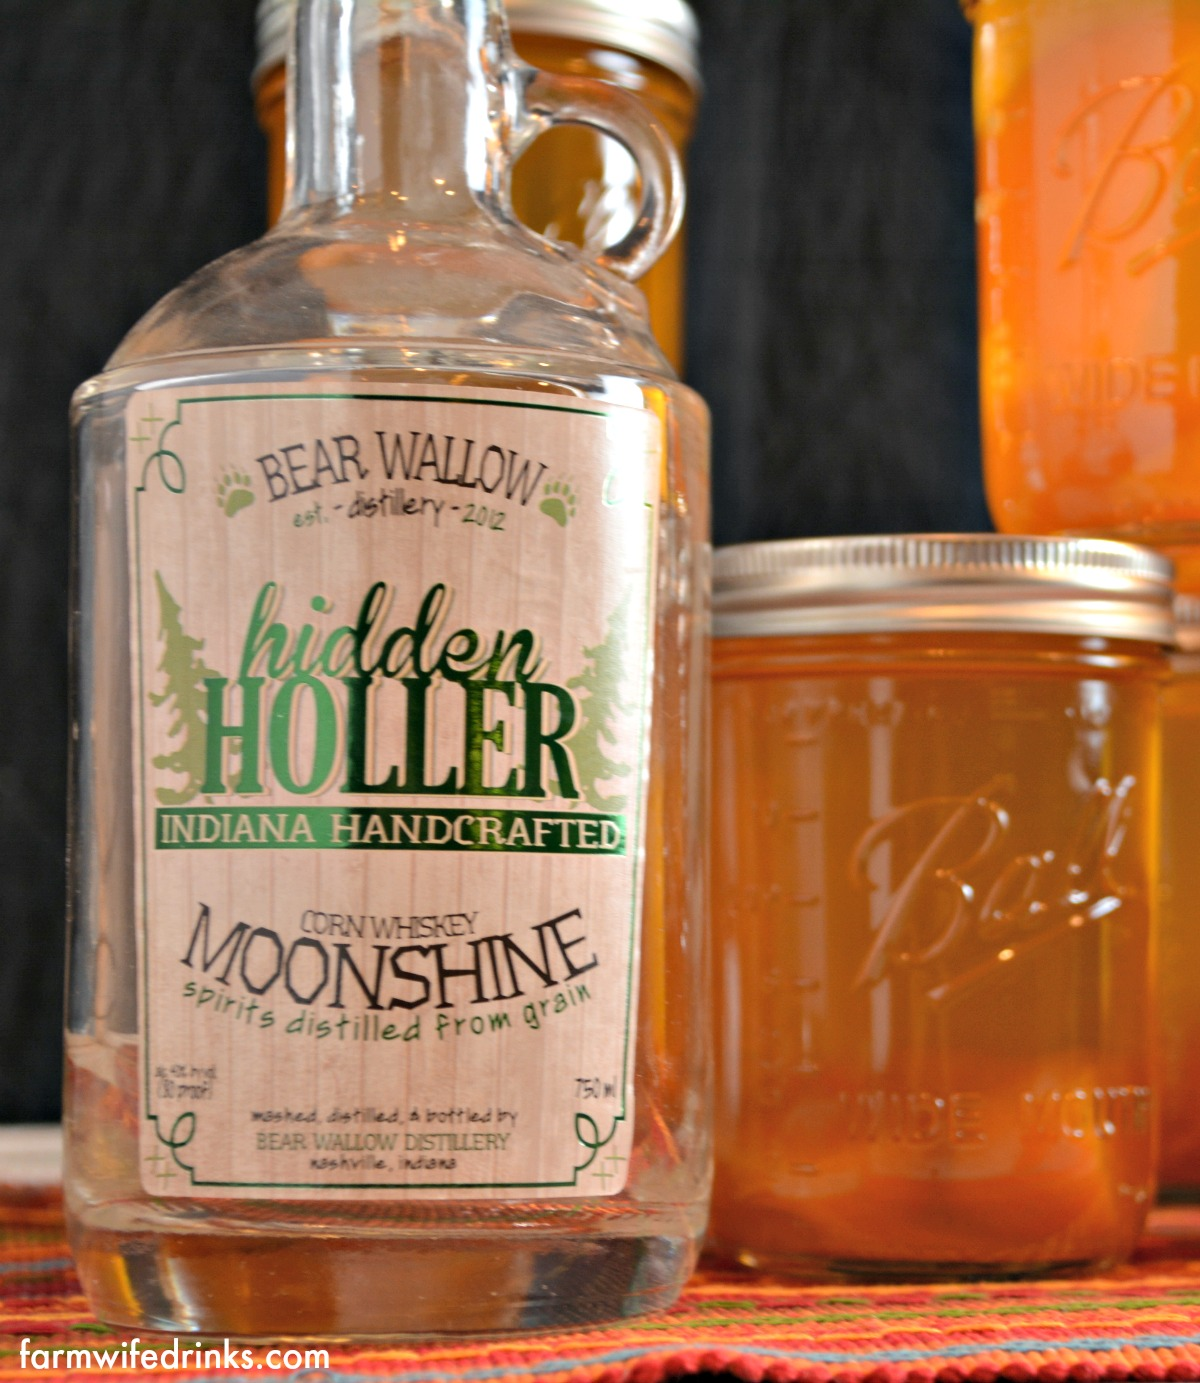 Hidden Holler Corn Whiskey Moonshine Made with the first legal still in Brown County, Hidden Holler Moonshine is typical of the kind of whiskey that is known to have been made in southern Indiana illegally since the late 1700's. This handcrafted whiskey is made from Indiana Corn and is an historically accurate example of what the best local farmer/distillers would produce. In the history of Moonshining in Brown County we found a description of a Moonshiner being pursued by the law, and it says,